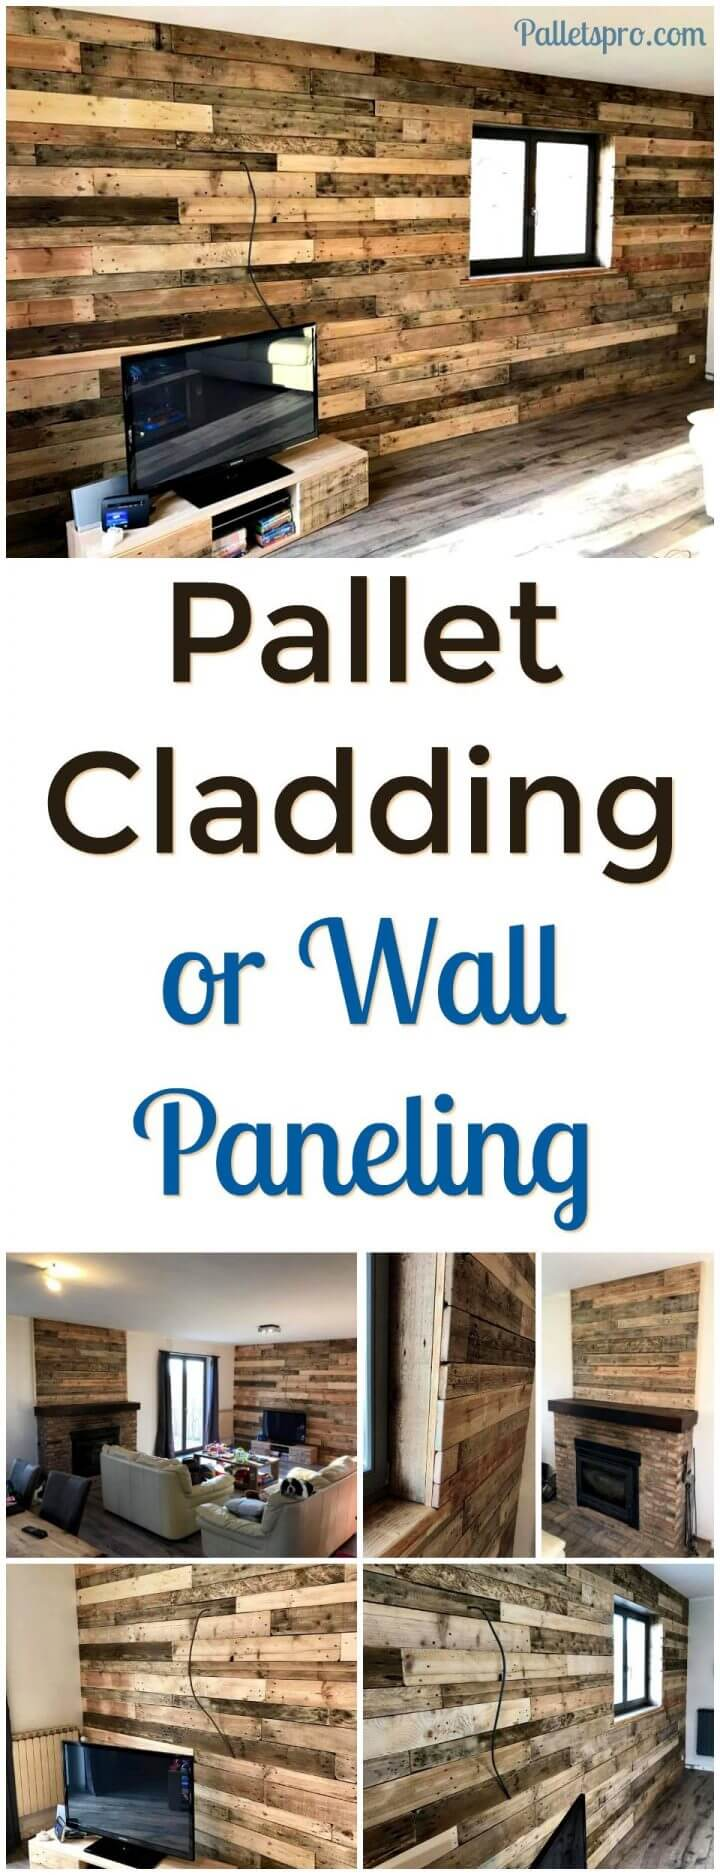 Diy Pallet Bathroom Wall Paneling: DIY Pallet Wall Paneling / Wall Cladding